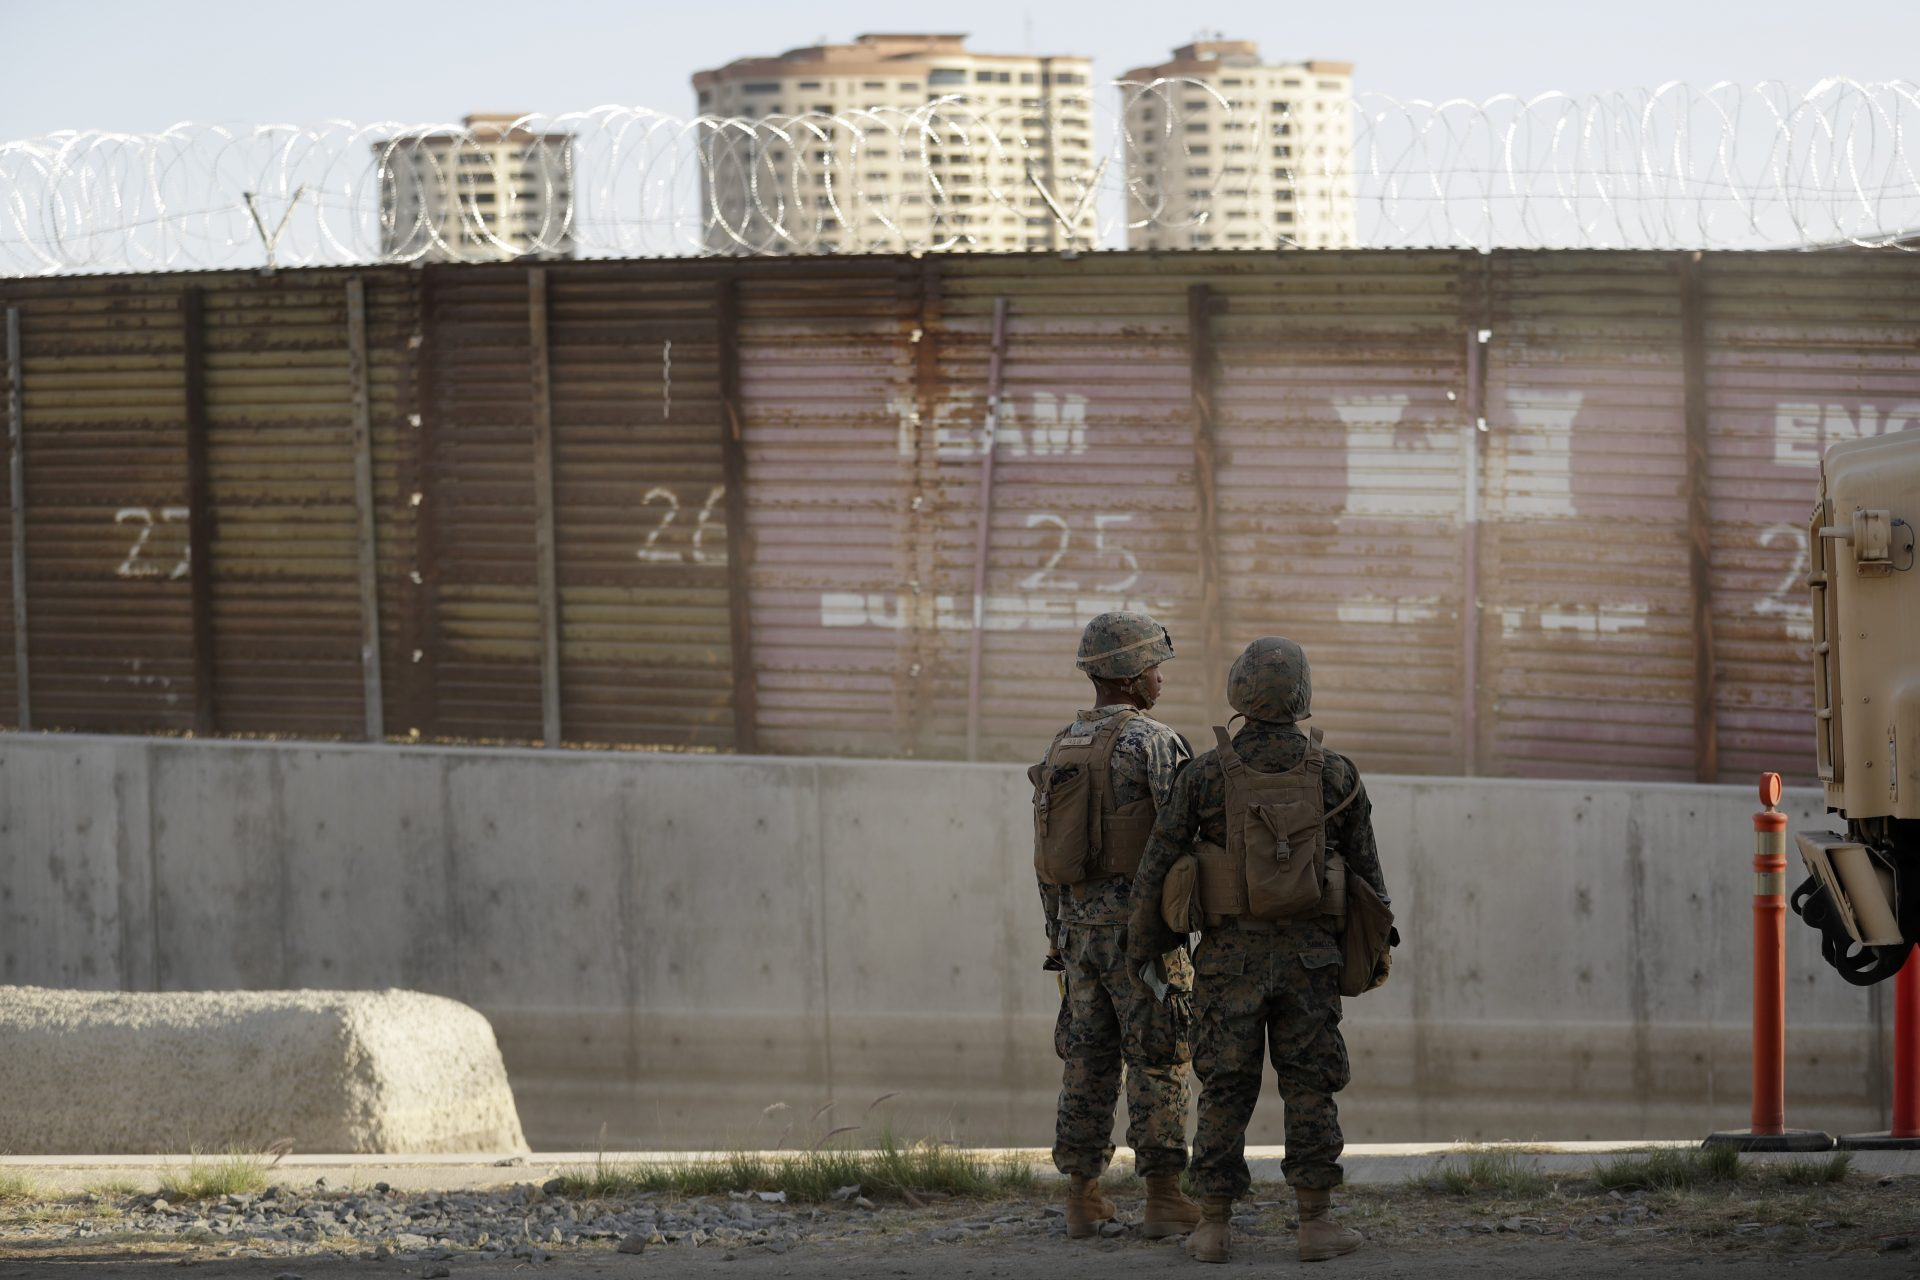 FILE PHOTO: Marines look on during work to fortify the border structure that separates Tijuana, Mexico, behind, and San Diego, near the San Ysidro Port of Entry, Friday, Nov. 9, 2018, in San Diego.